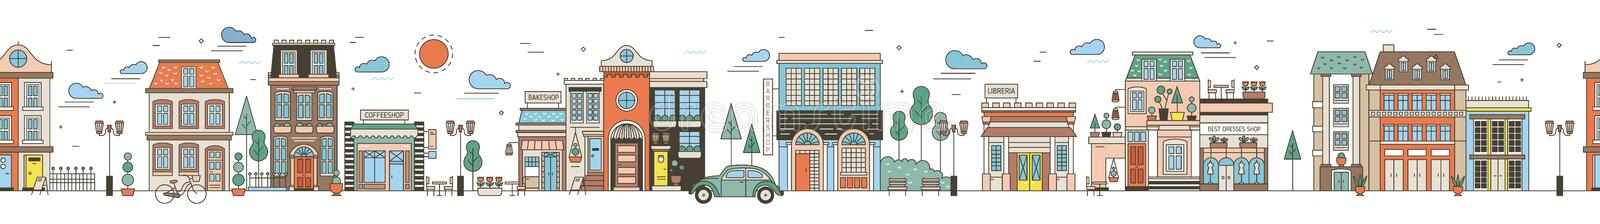 Seamless horizontal urban landscape with city street. Cityscape with beautiful buildings, residential houses, shops vector illustration